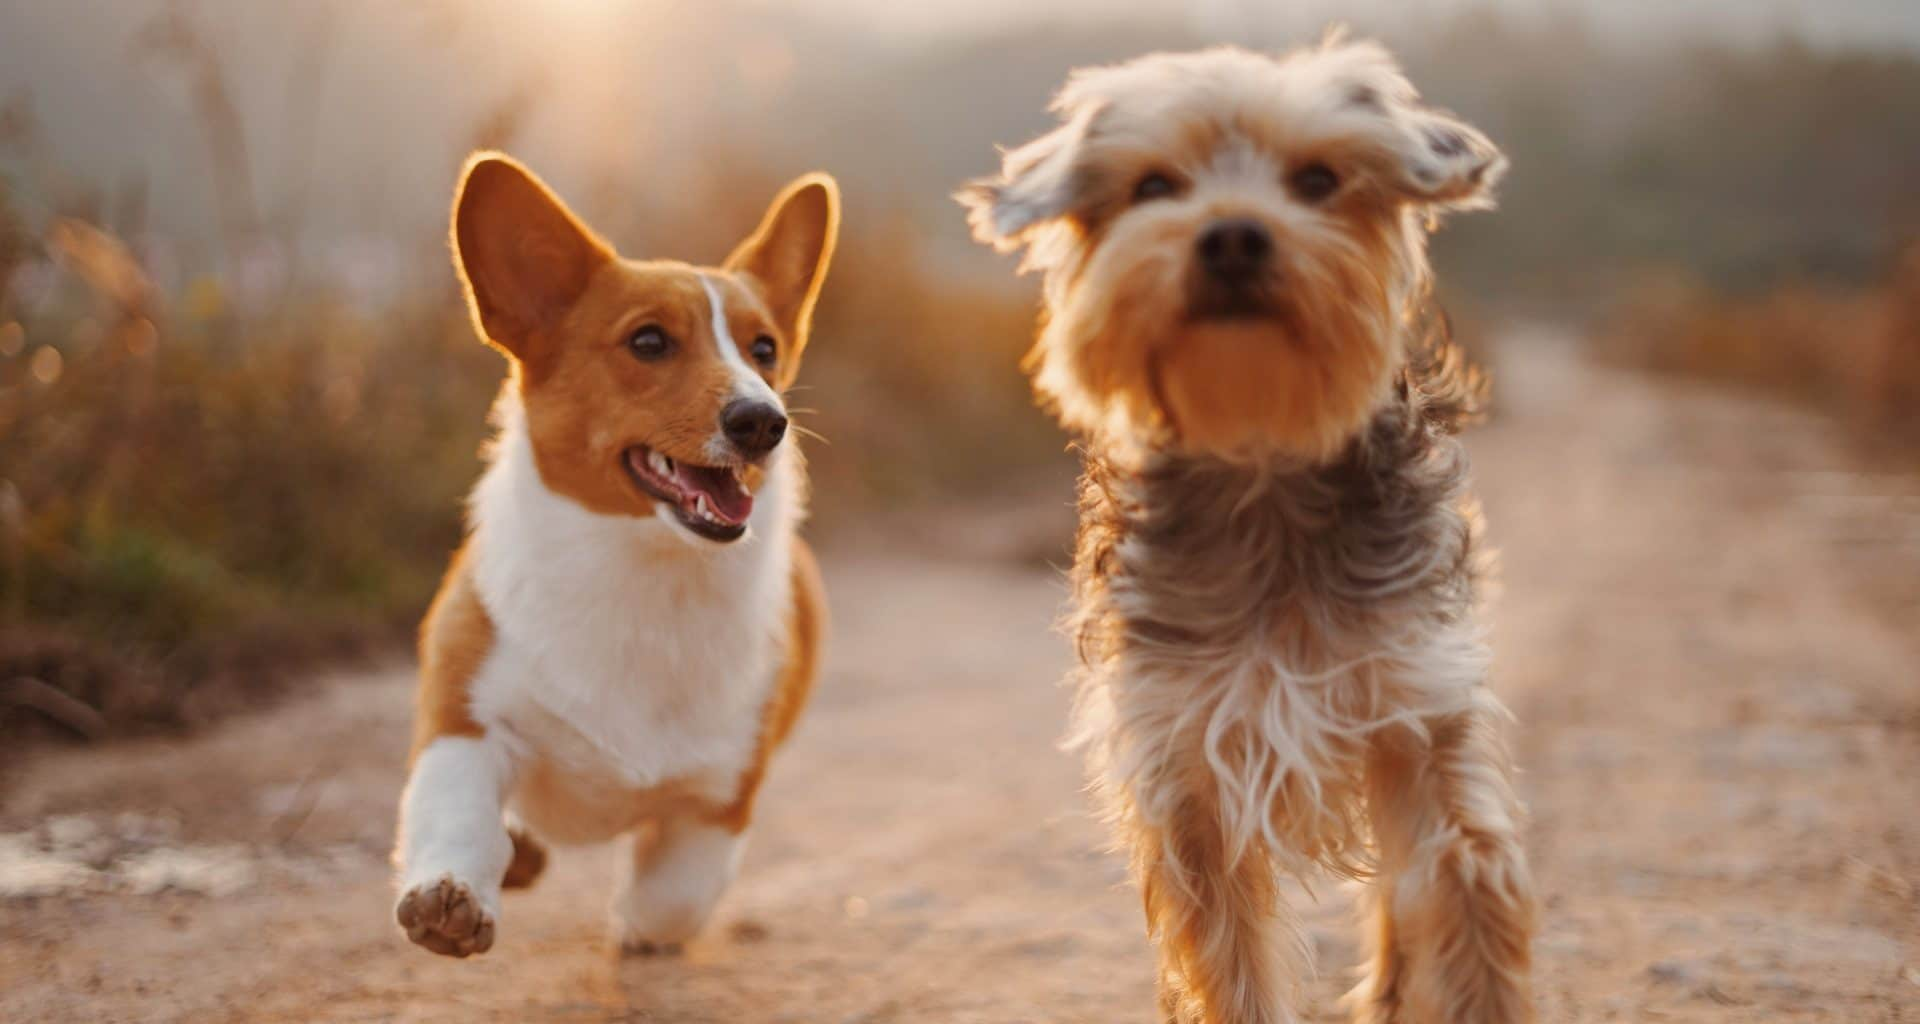 Https Petpedia Co Most Popular Dog Breeds